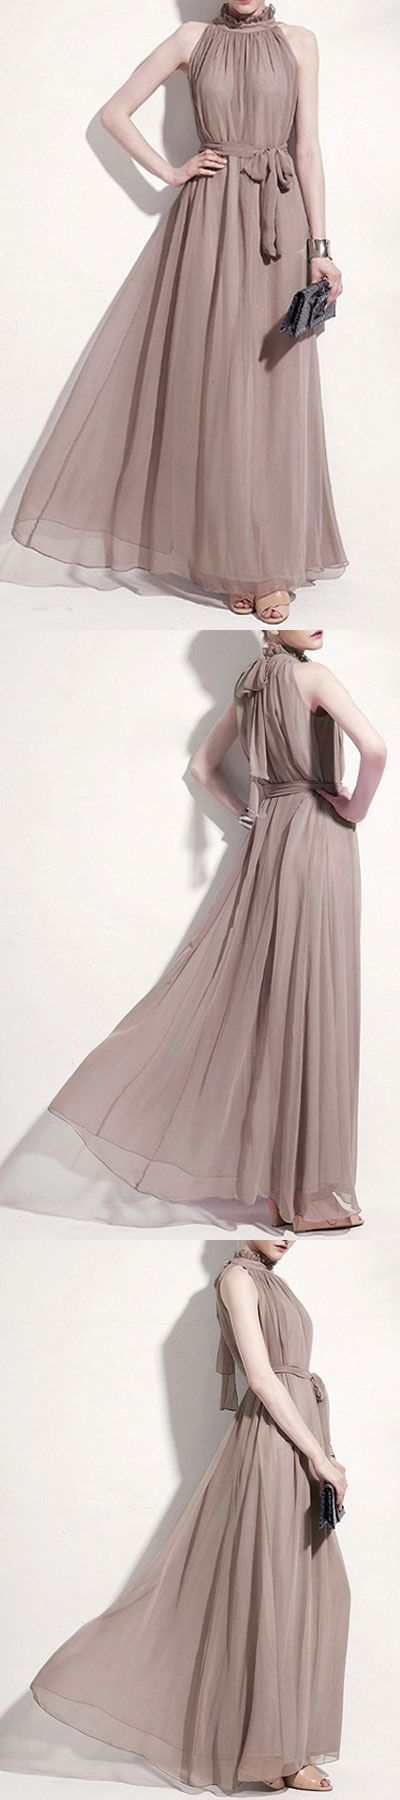 girlish maxi dress - chiffon dress for occasions, prom and birthday parties....best deal today -only $23.9